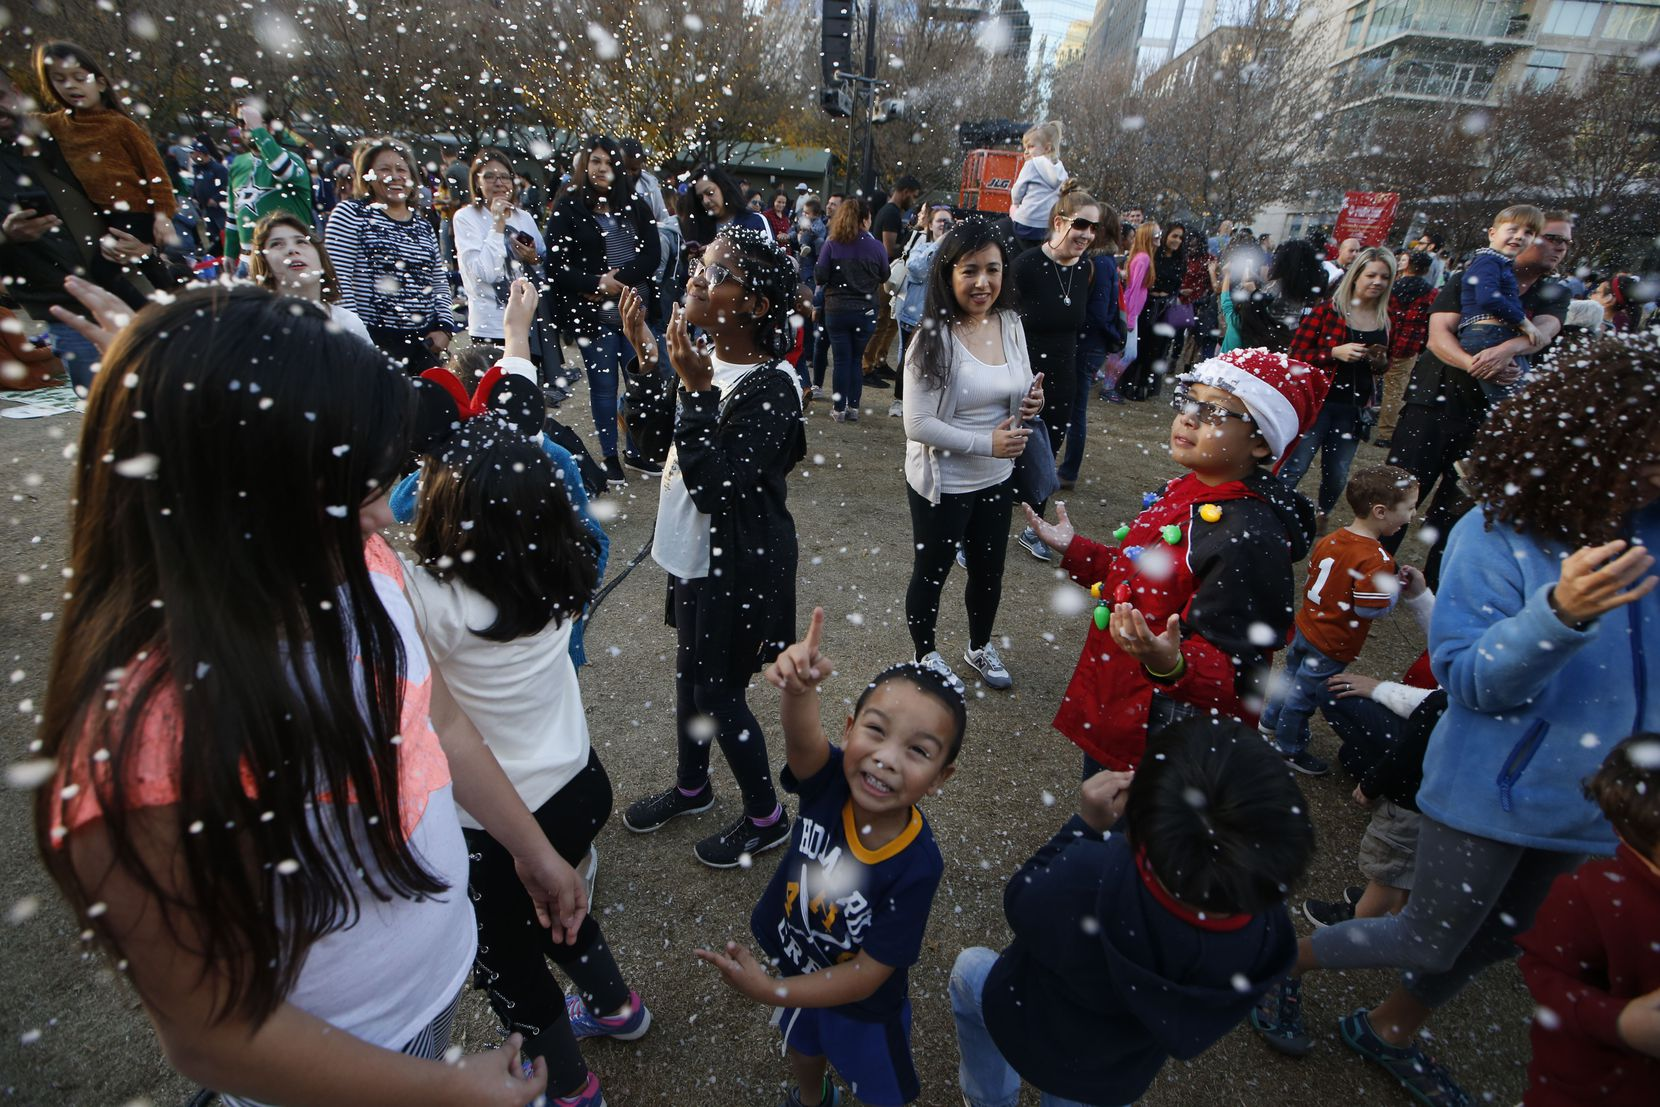 Kids play in fake snow during the 2018 tree lighting celebration at Klyde Warren Park. This year's event is Dec. 7.